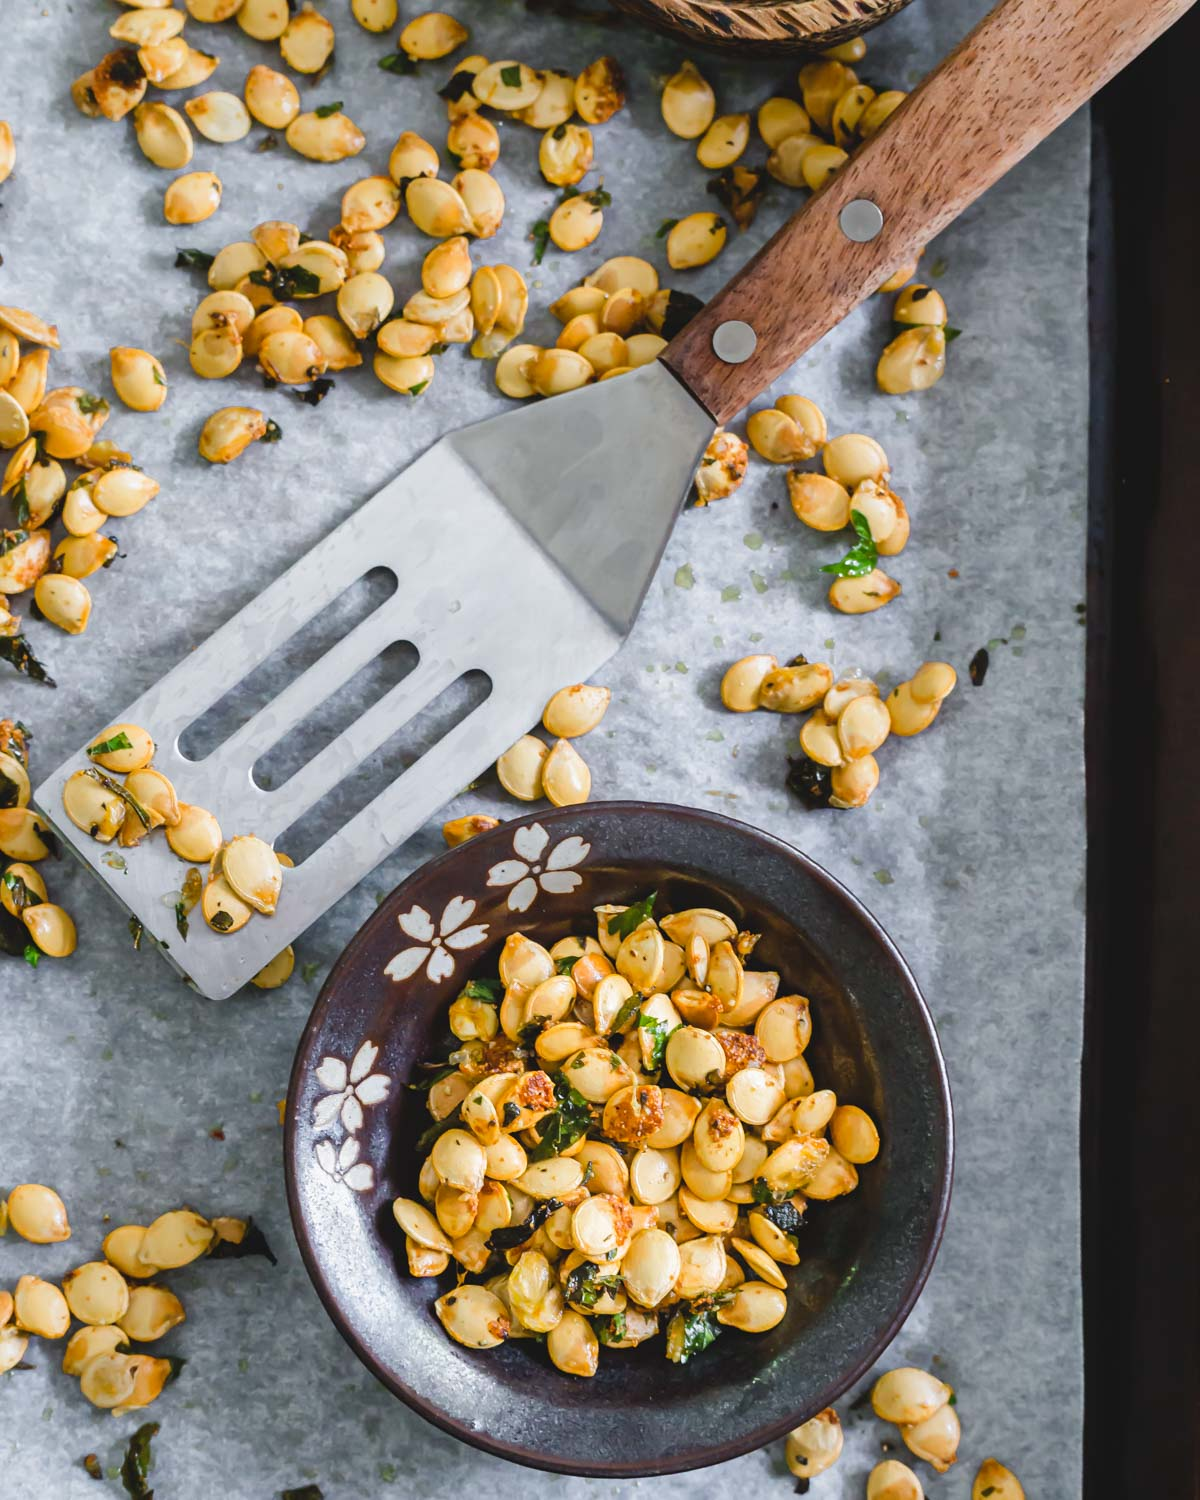 Roasted delicata squash seeds with garlic and herbs in a small bowl.